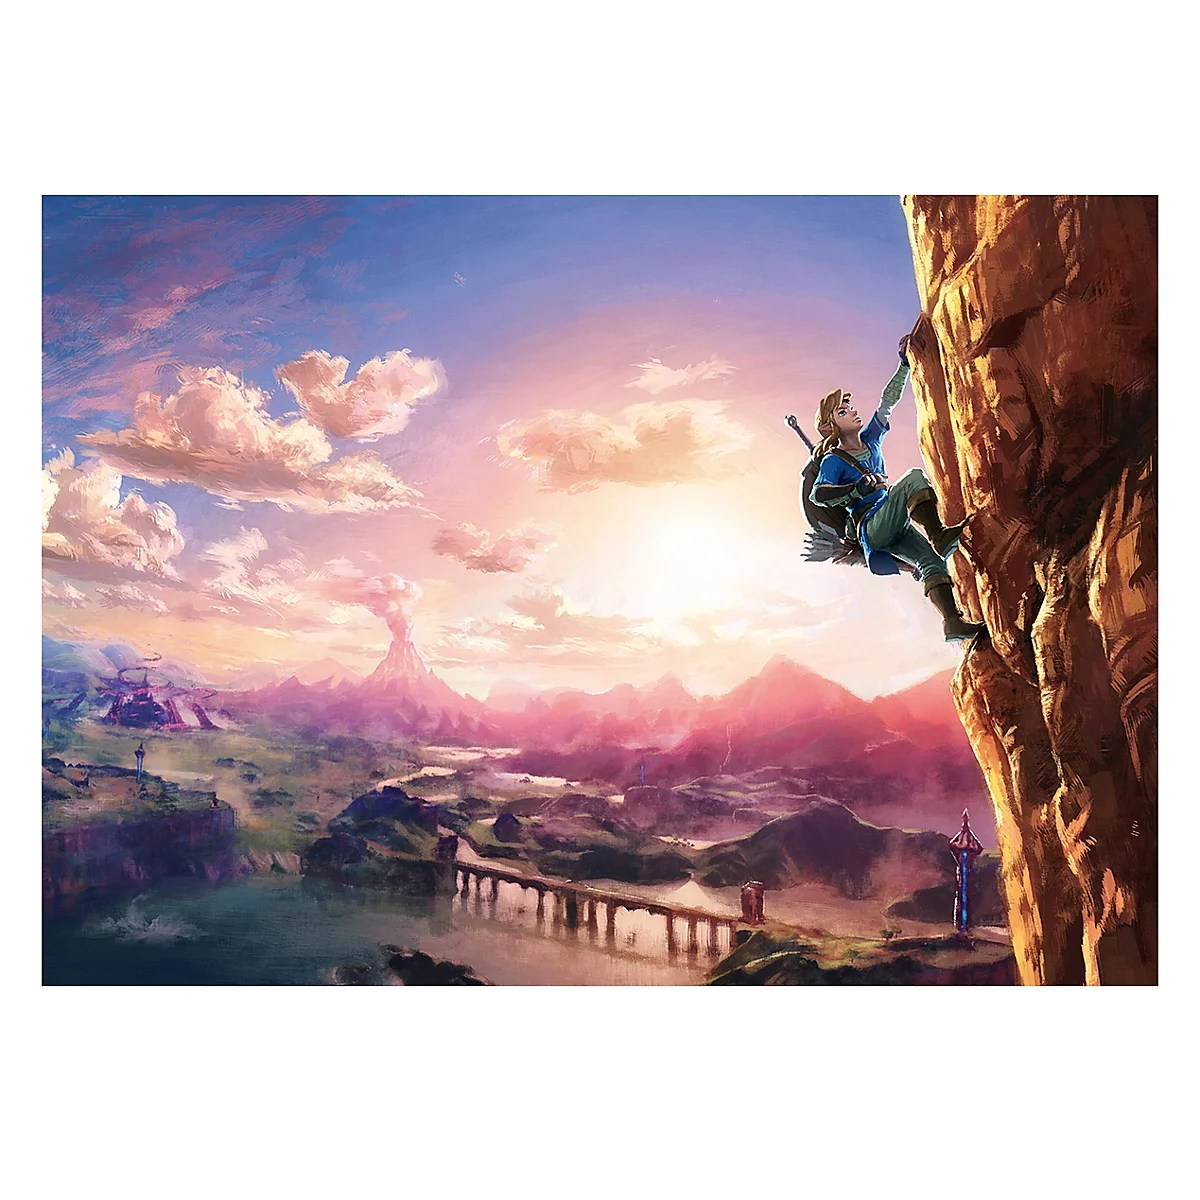 Legend Of Zelda Breath Of The Wild Königliche Küche Zelda Puzzle Breath Of The Wild Mit 500 Teilen